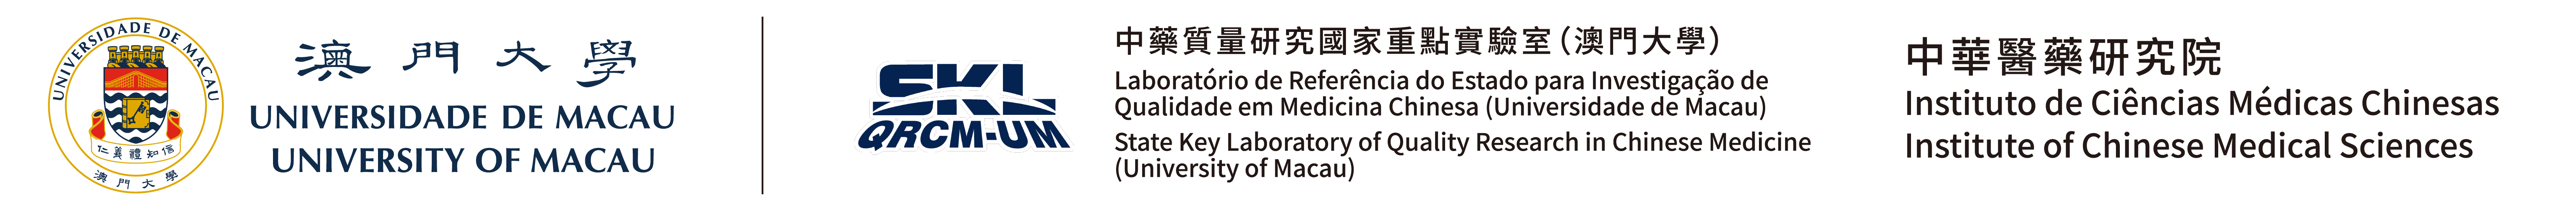 State Key Laboratory of Quality Research in Chinese Medicine & Institute of Chinese Medical Sciences | University of Macau Logo